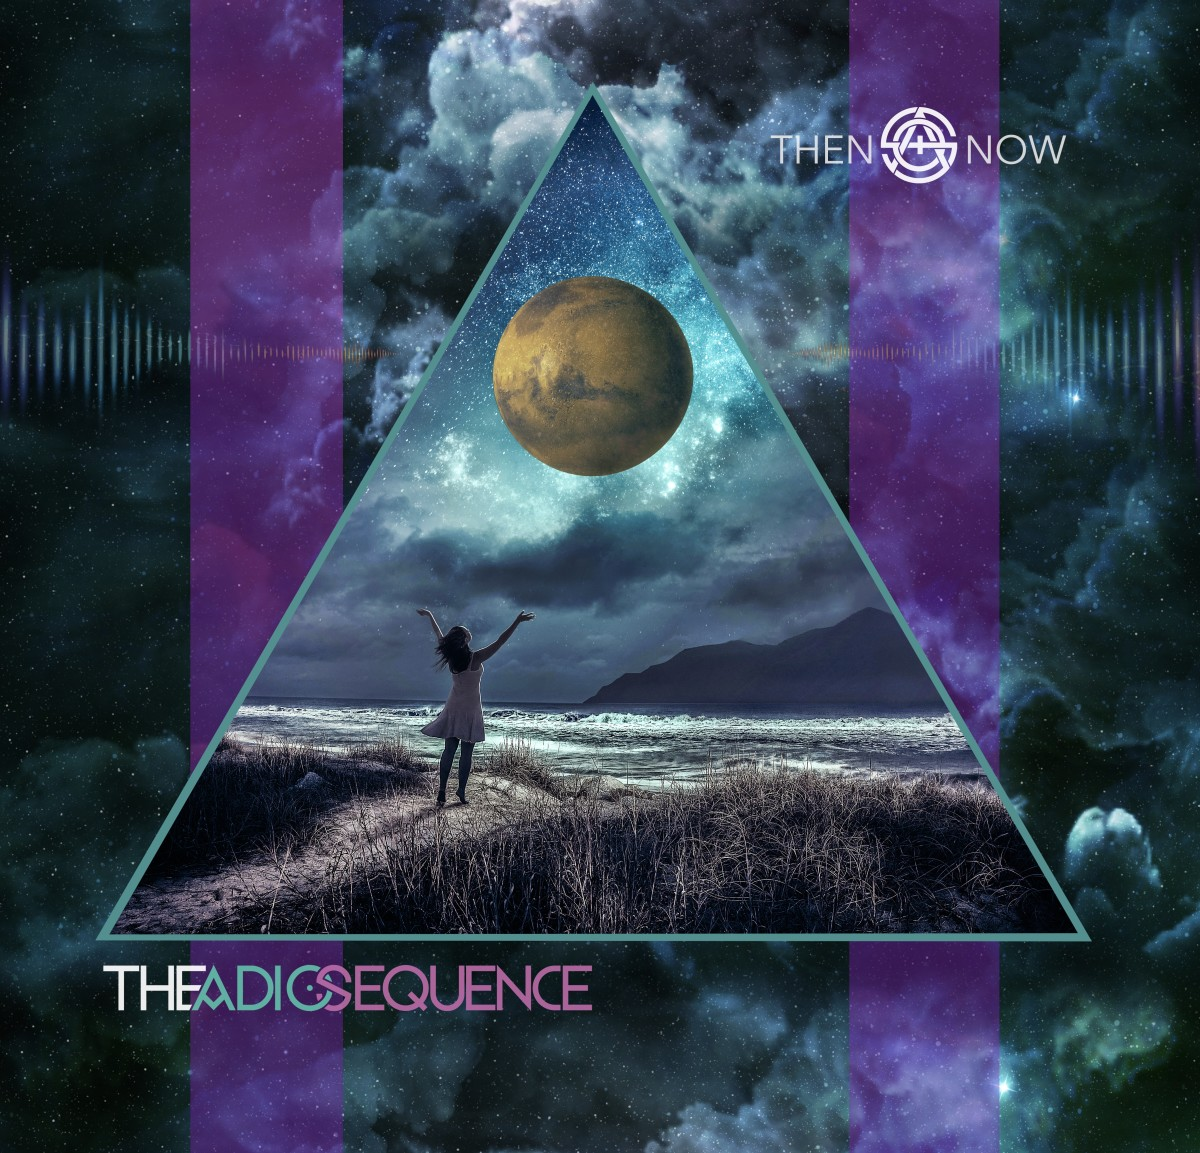 Interview With Travis Williams of The Adio Sequence